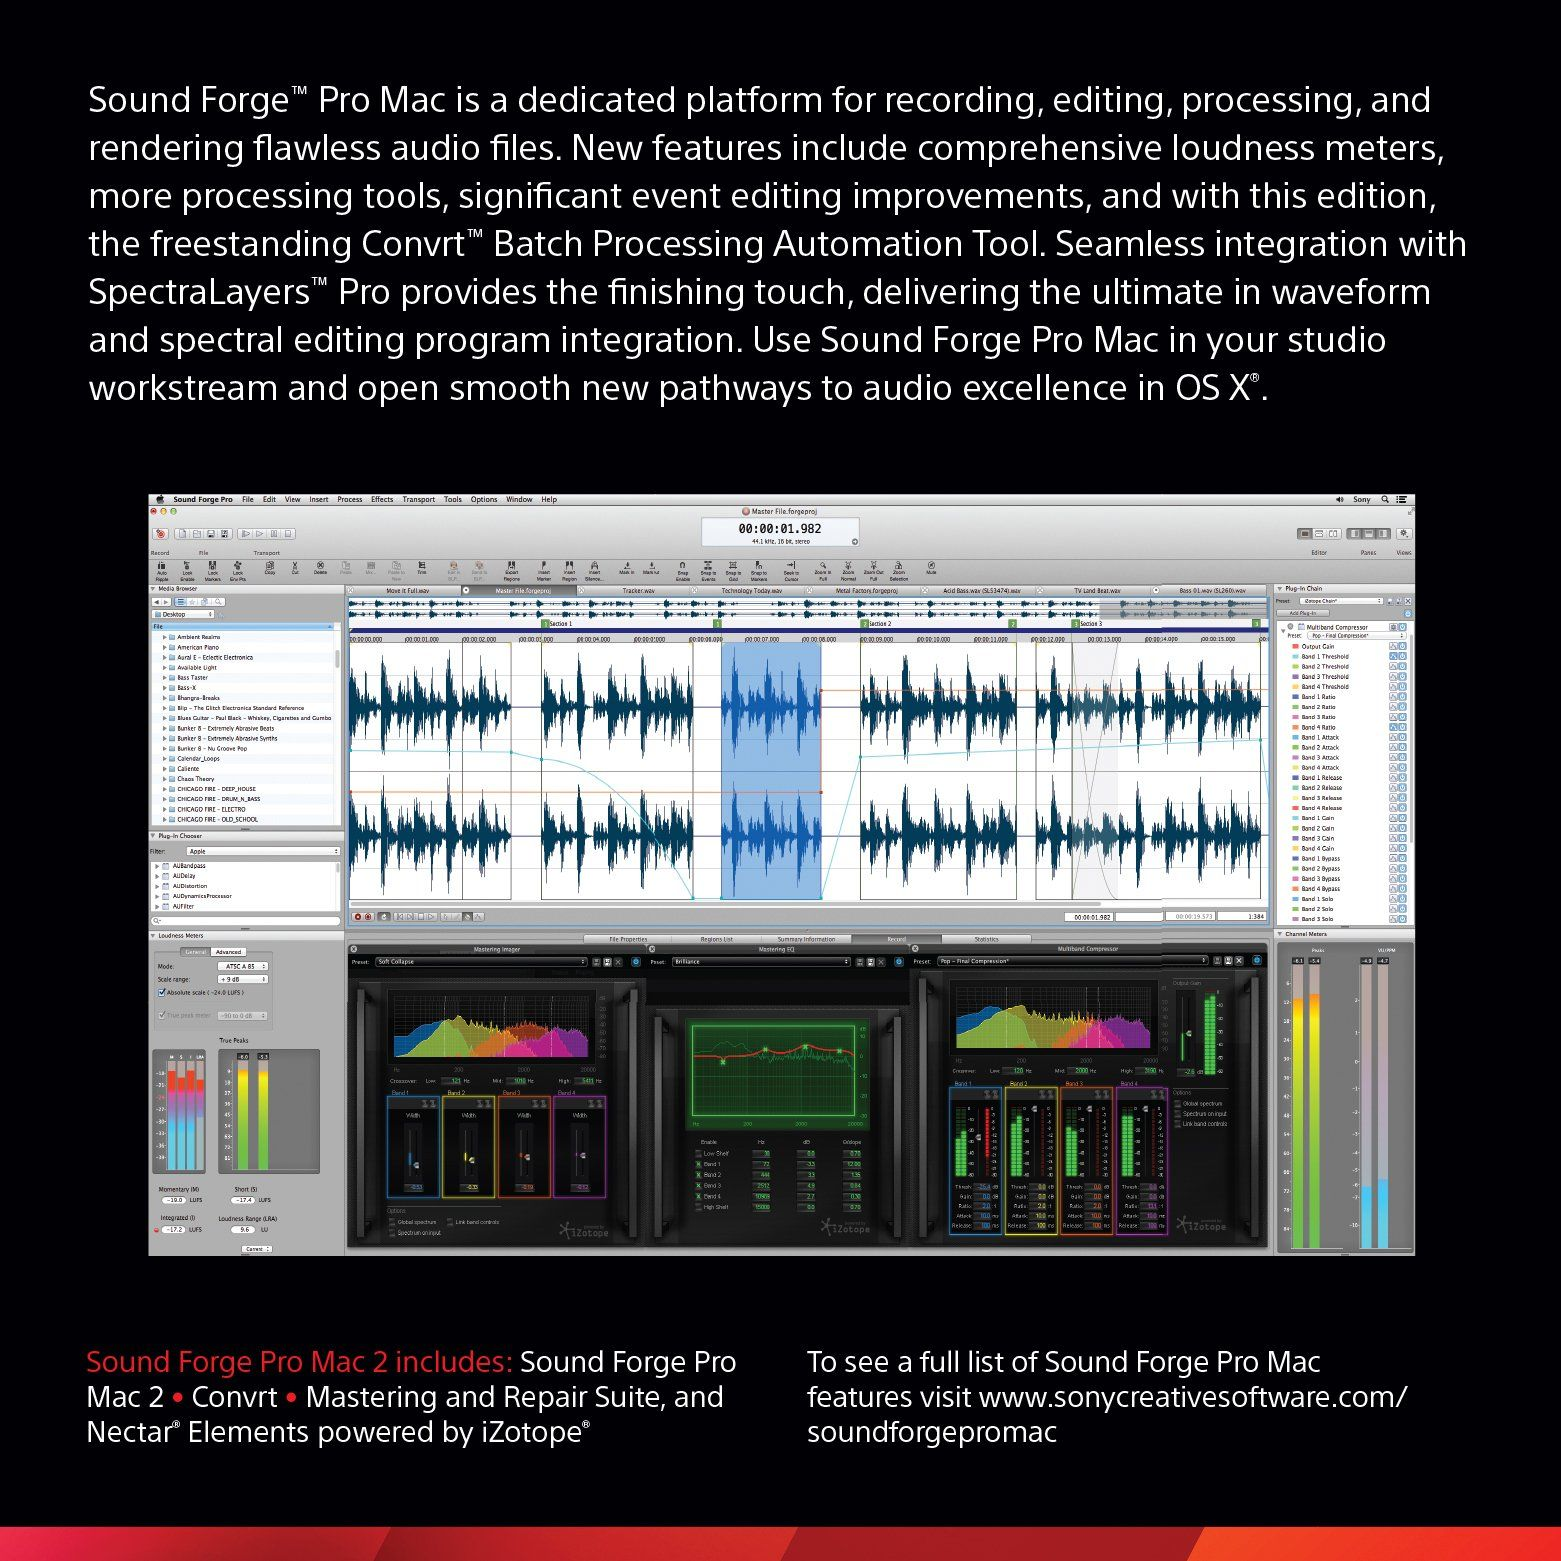 Sony Sound Forge Pro Mac 2 [Download]  http://www.bestcheapsoftware.com/sony-sound-forge-pro-mac-2-download-2/